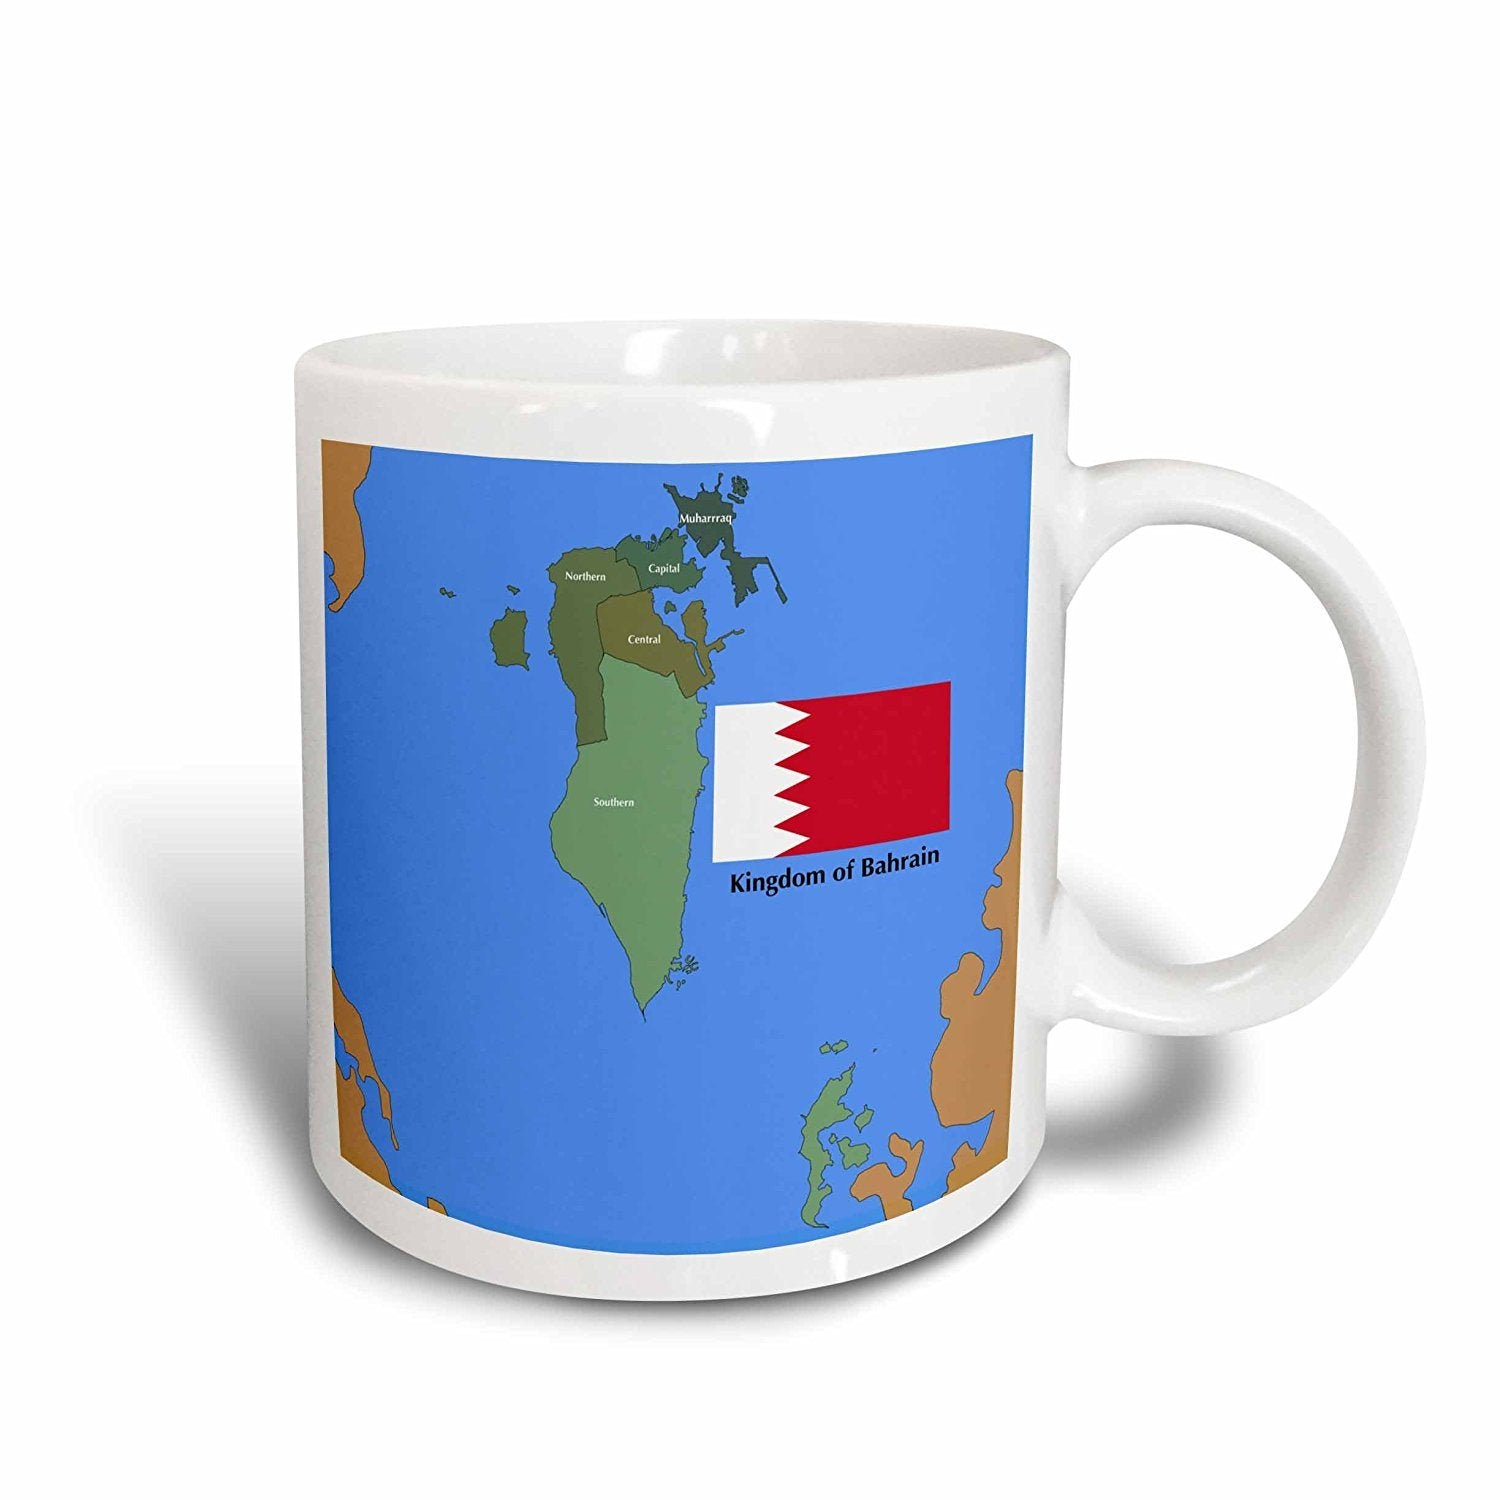 3dRose The Flag and Map of Bahrain with All Governing Regions Marked, Ceramic Mug, 15-Oz